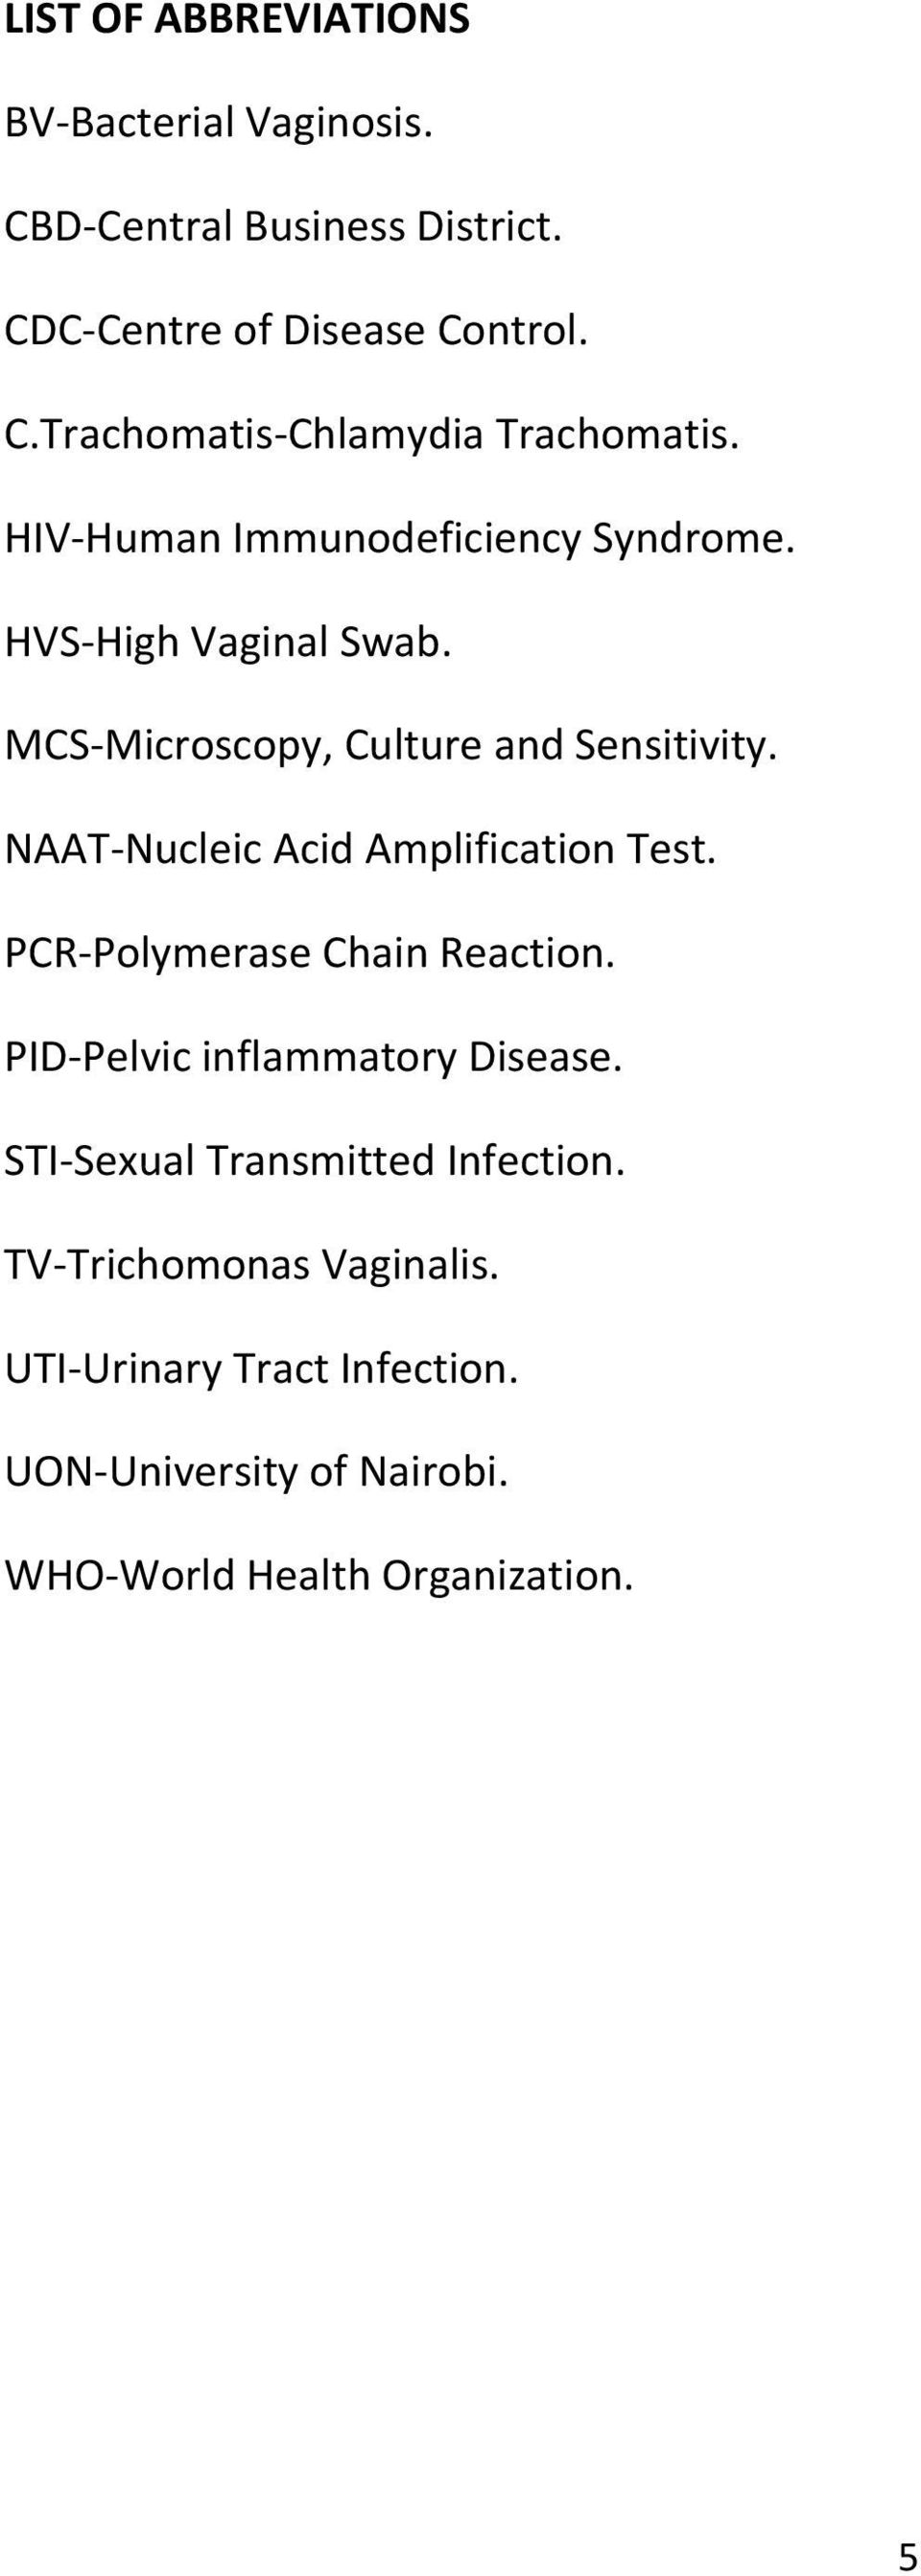 NAAT-Nucleic Acid Amplification Test. PCR-Polymerase Chain Reaction. PID-Pelvic inflammatory Disease.